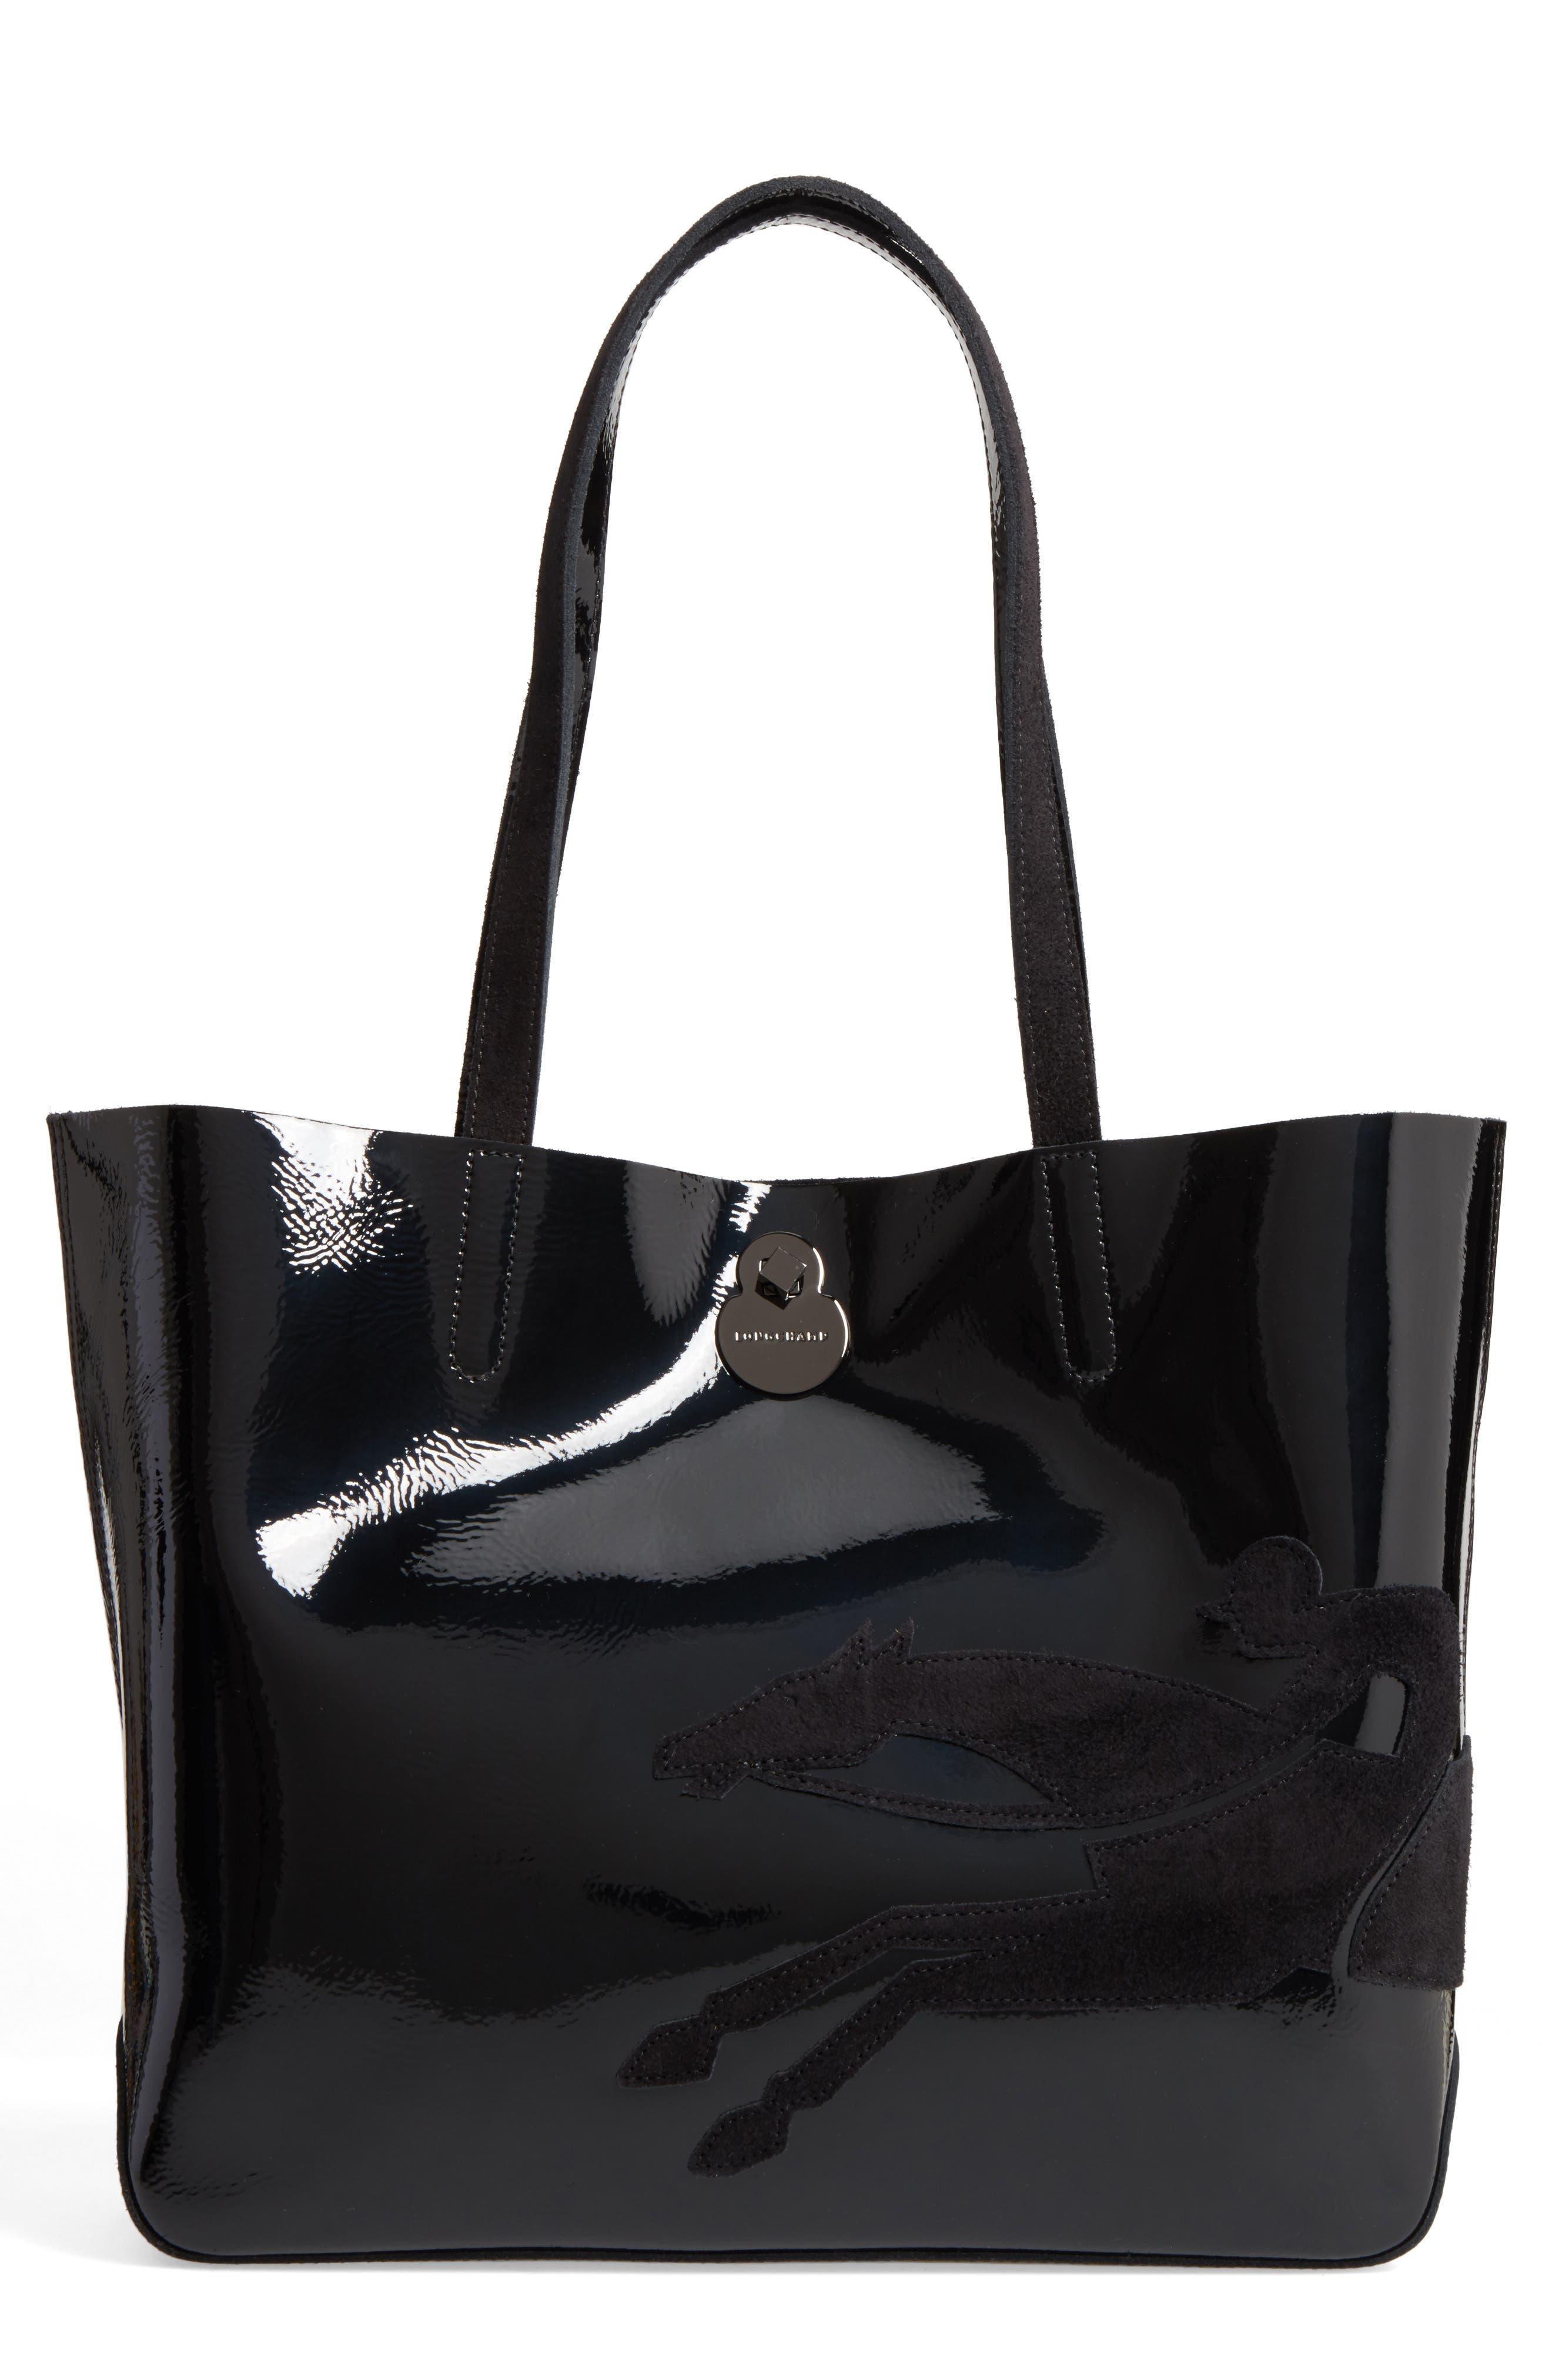 Shop-It Leather Tote,                         Main,                         color, Black